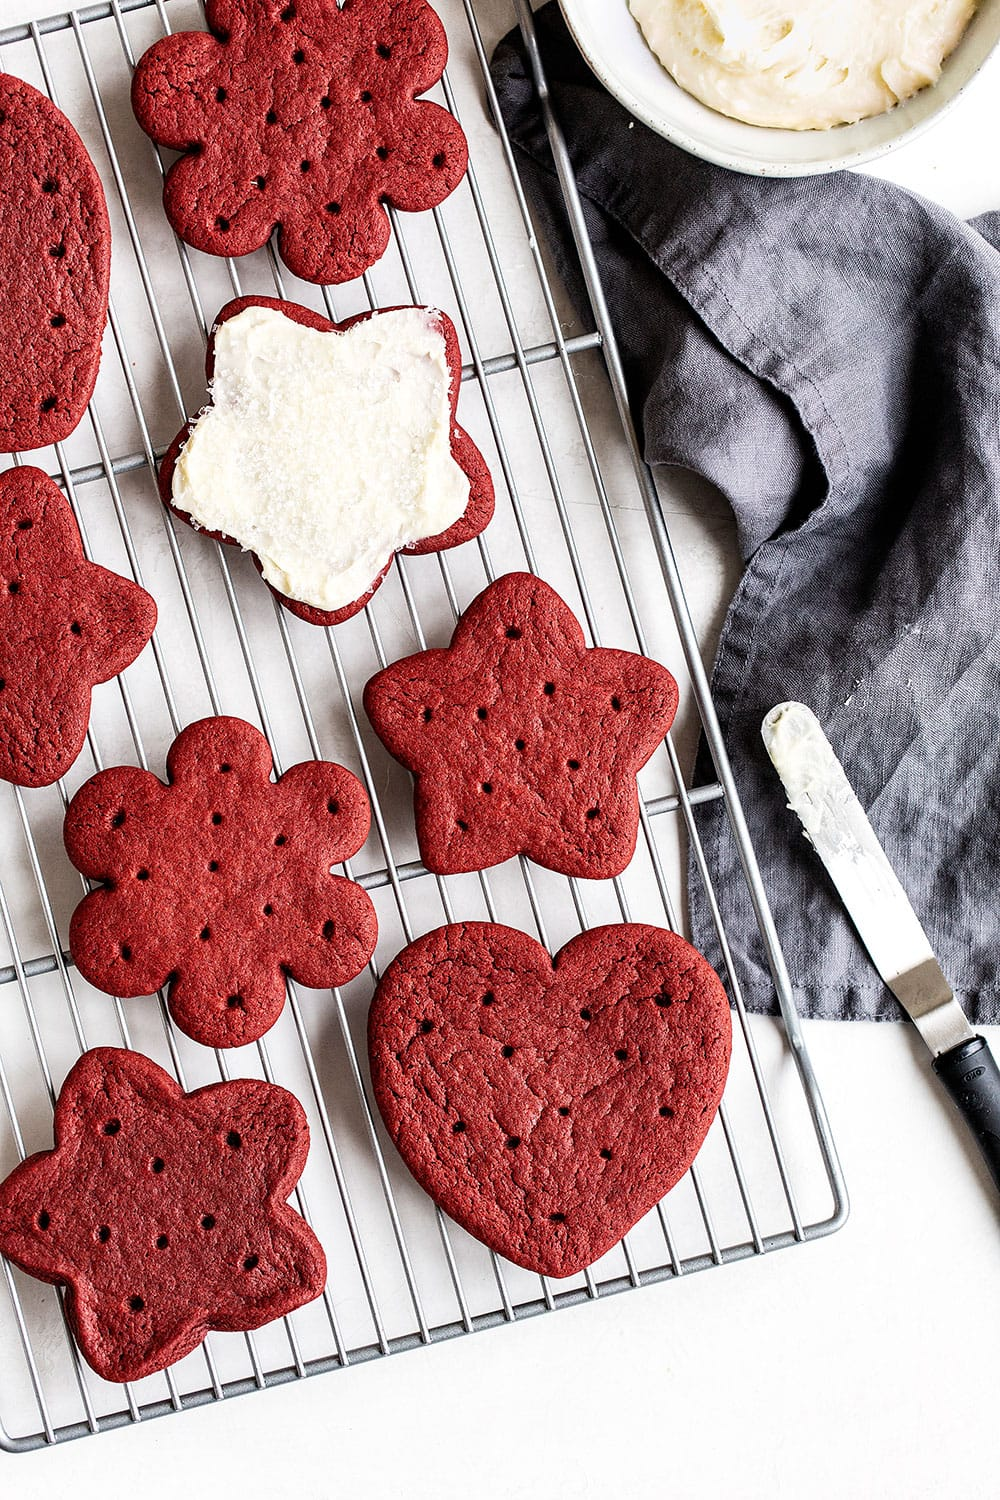 red velvet cookies from scratch on a cooling rack